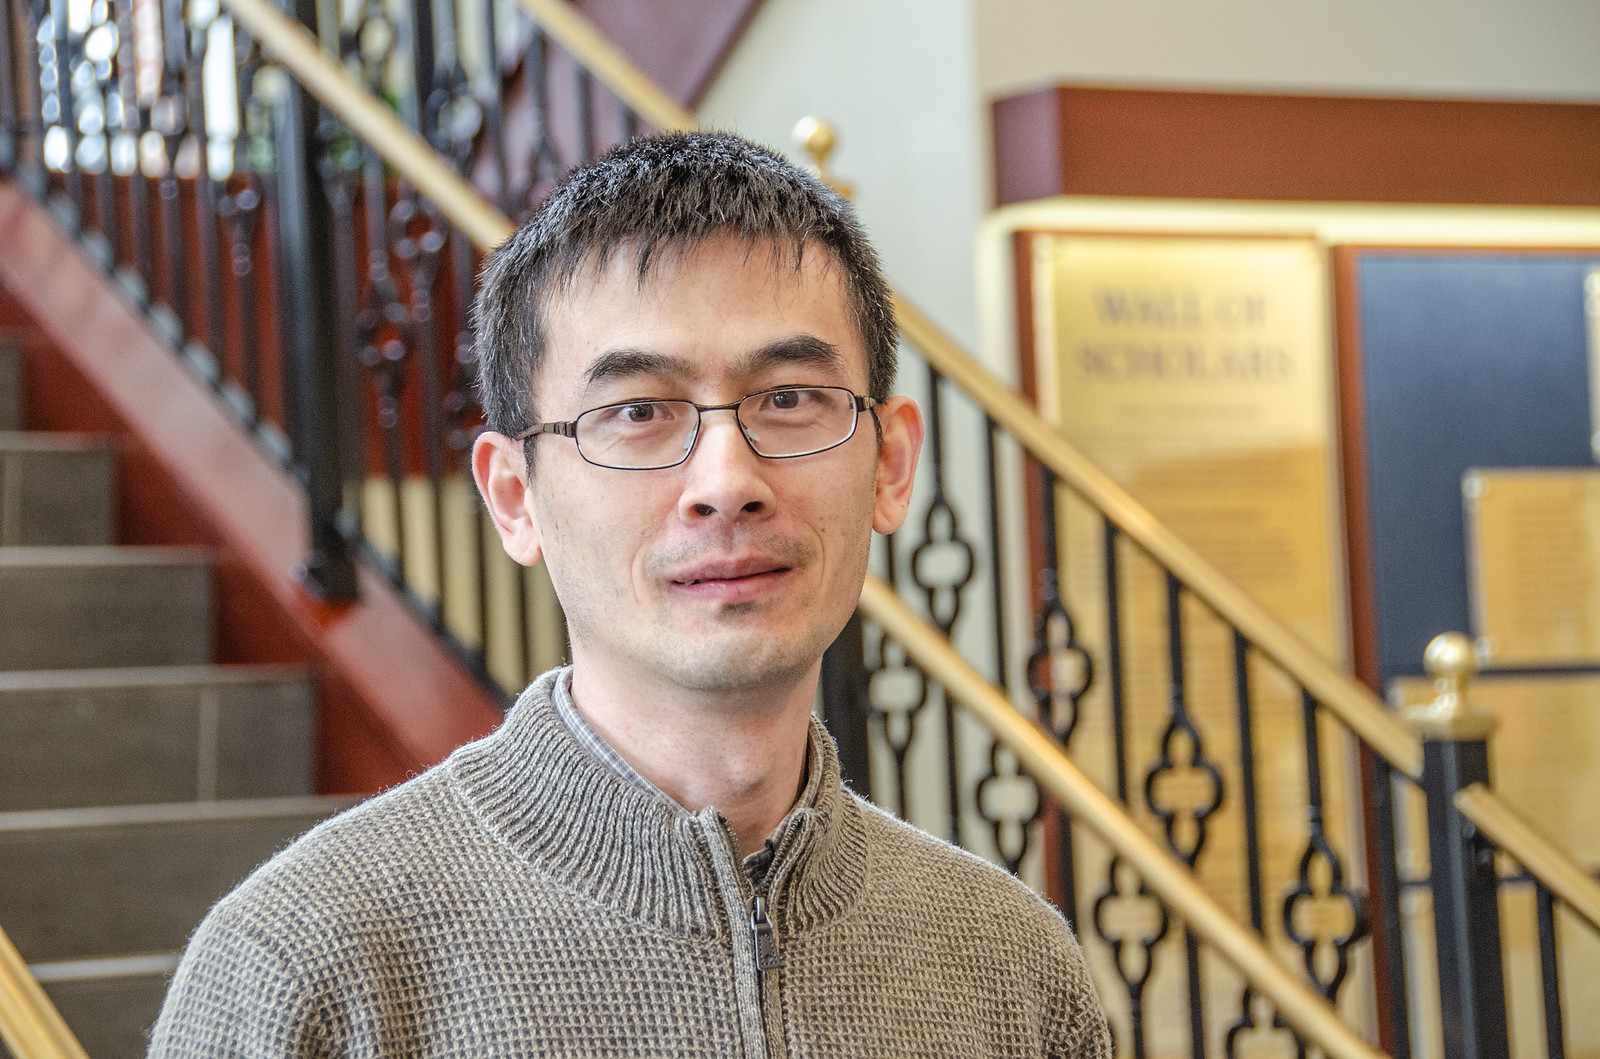 Research led by Xin Li, of the WVU Lane Department of Computer Science and Electrical Engineering, will aim to make identifying autism easier via artificial intelligence.(WVU Photo/Paige Nesbit)